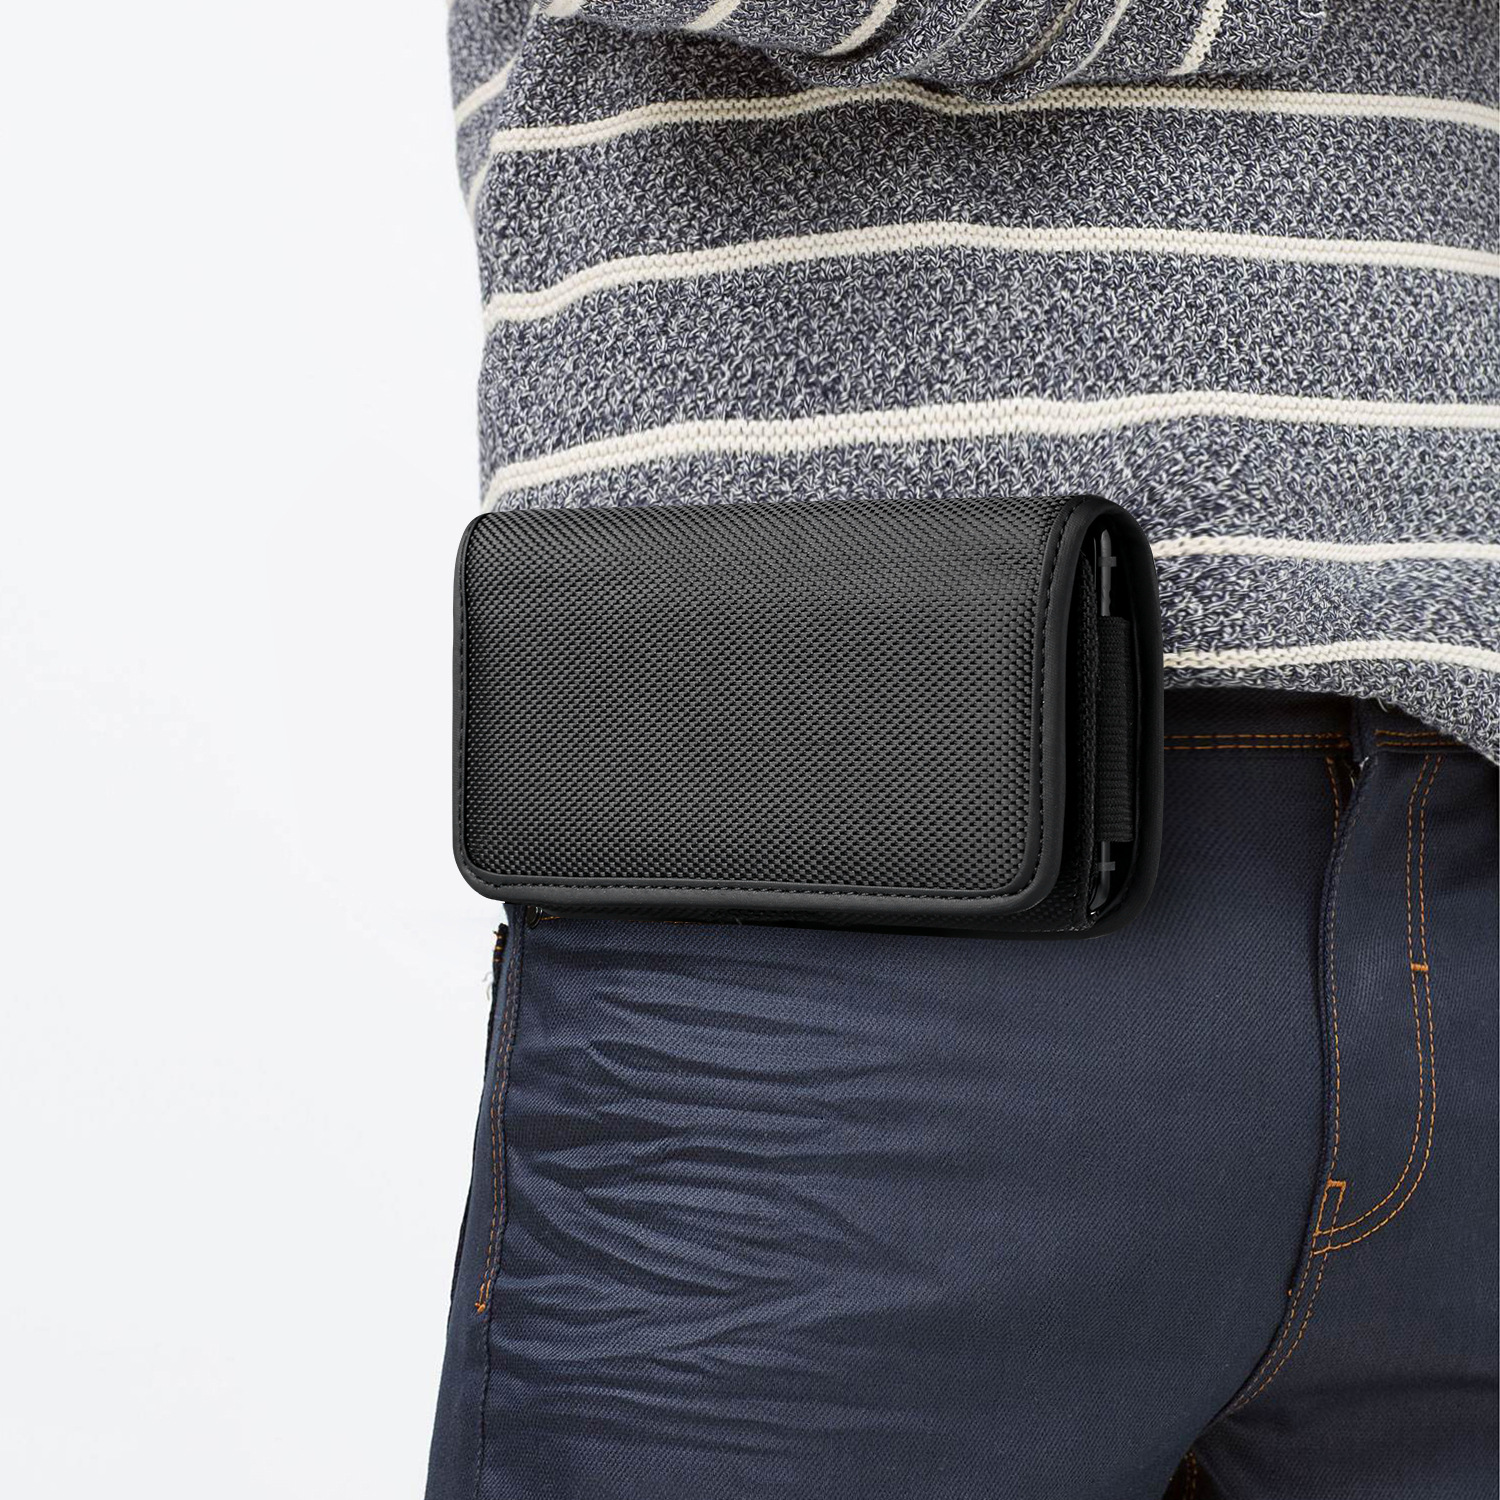 Waist Holster <font><b>Case</b></font> for <font><b>iphone</b></font> 11 Pro Max 8 7 6S Plus Cover Plus <font><b>Belt</b></font> Clip Pouch <font><b>Case</b></font> for <font><b>iphone</b></font> 5S 8 Plus <font><b>XR</b></font> XS Max Phone Bag image